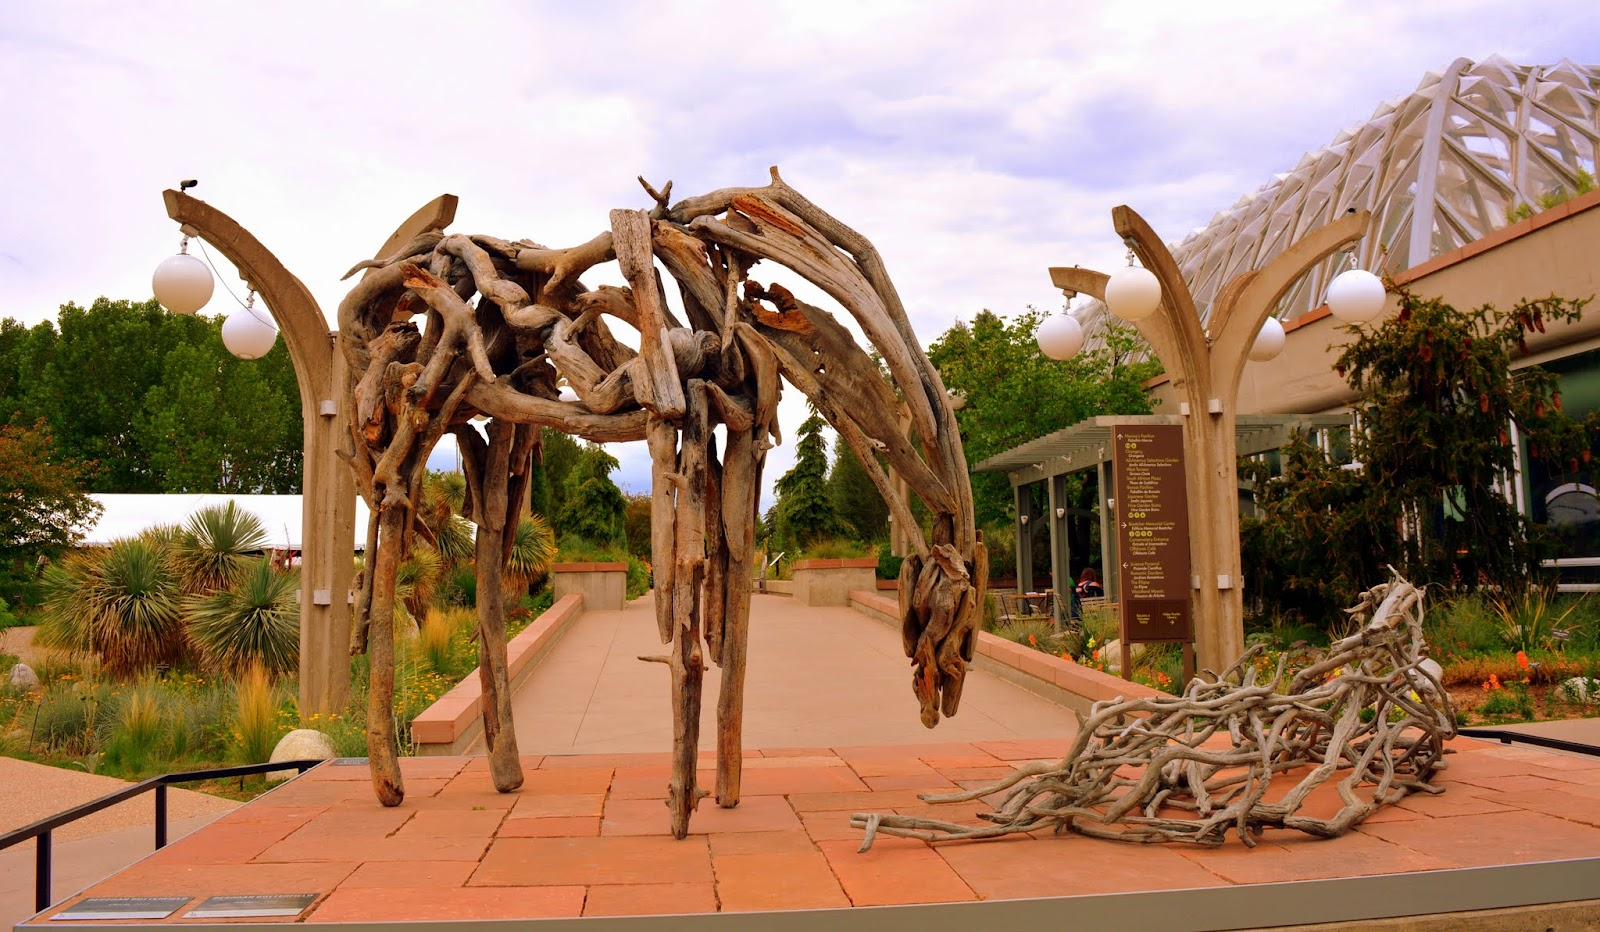 The Nature Of Horses Exhibit At The Denver Botanic Garden